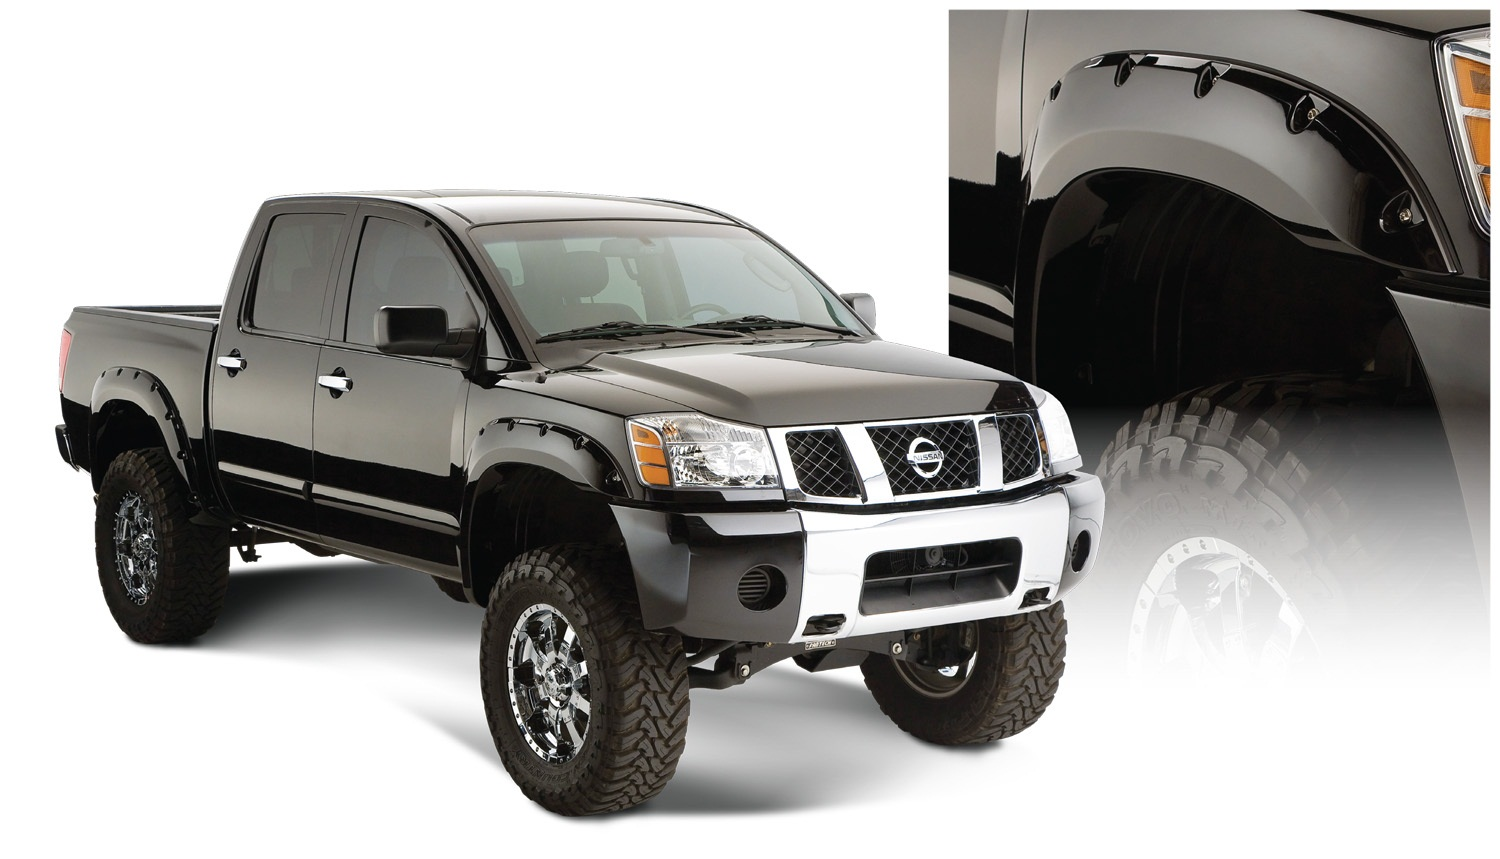 Pocket Styler Fender Flares, 2 pc., Rear Tire Coverage 2 in., Rear Height 6 in., Smooth Finish, Black, w/Bedside Lockbox